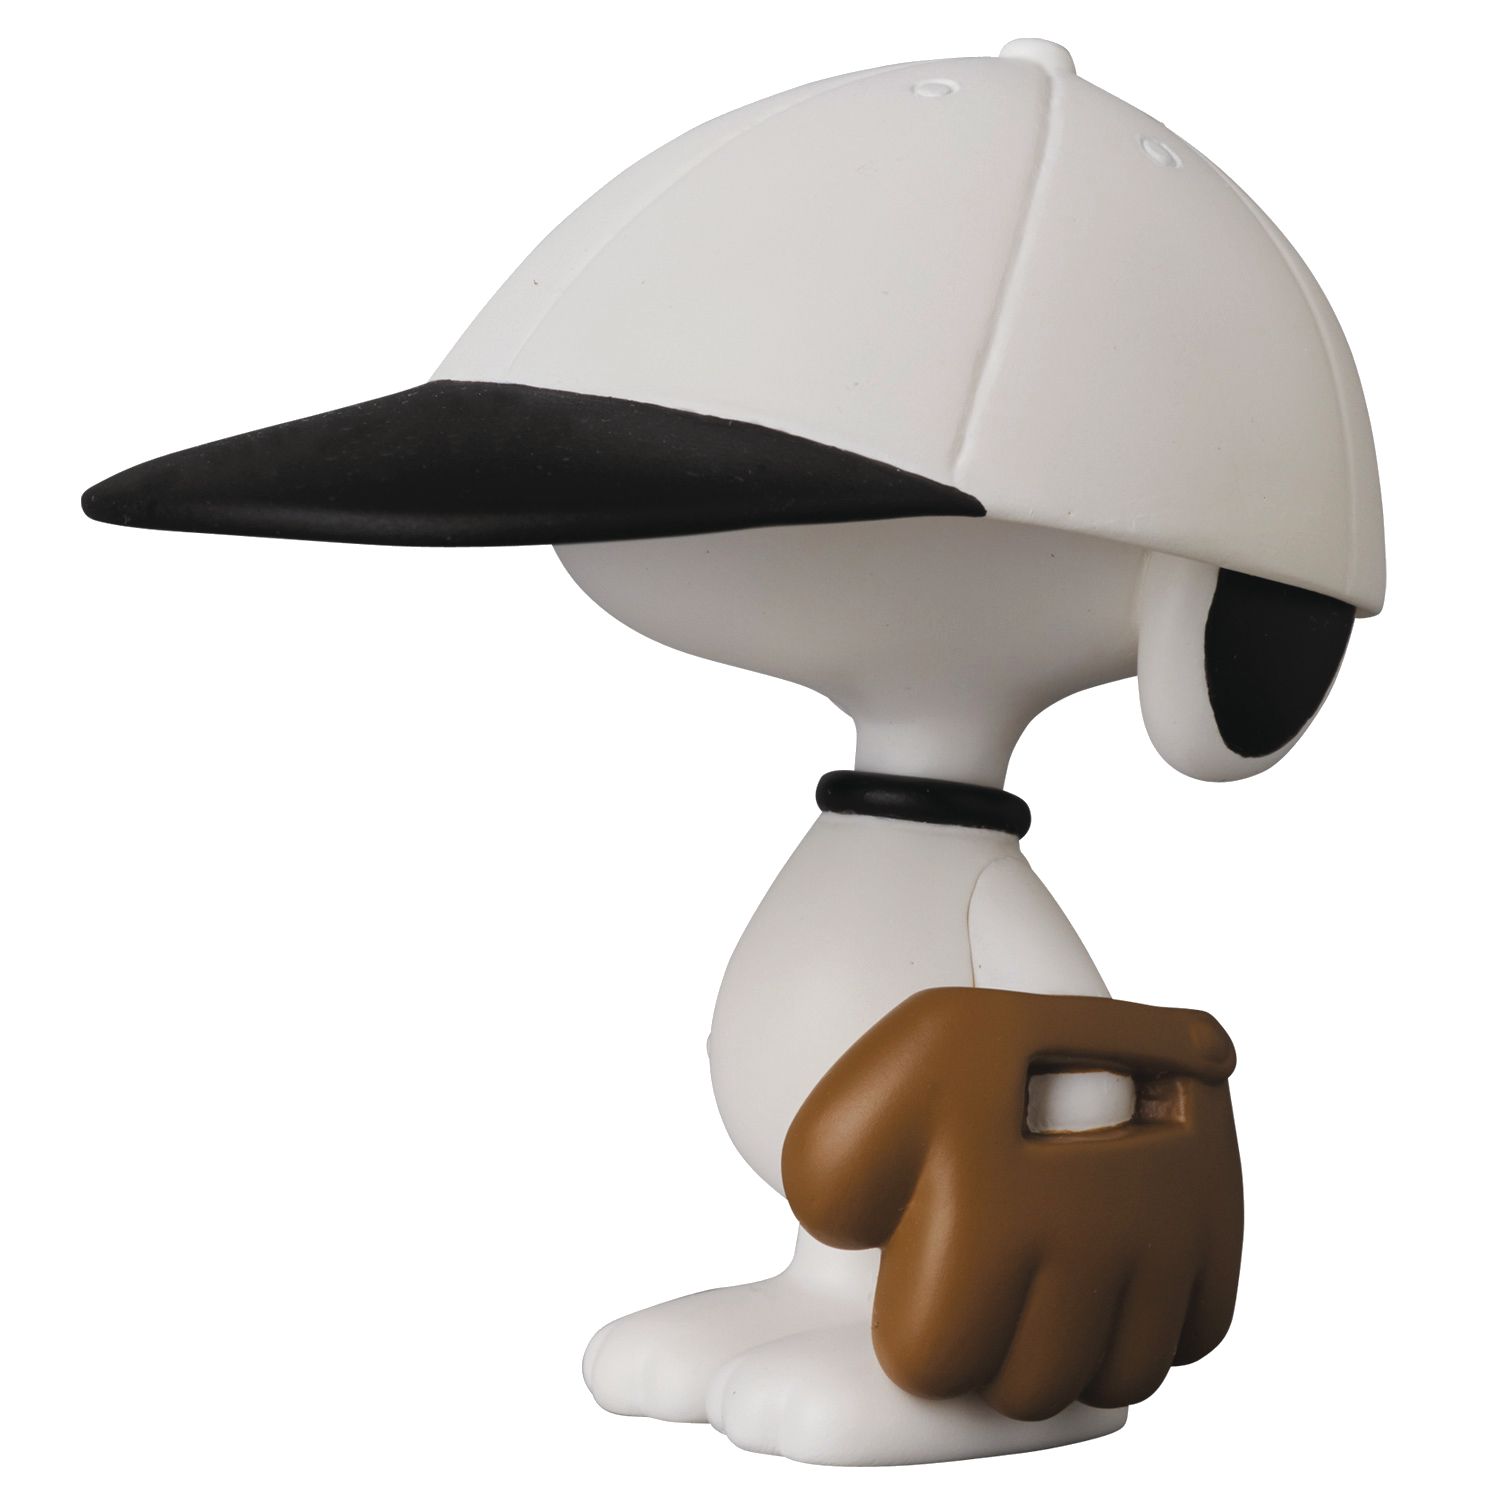 PEANUTS BASEBALL PLAYER SNOOPY UDF FIG SERIES 8